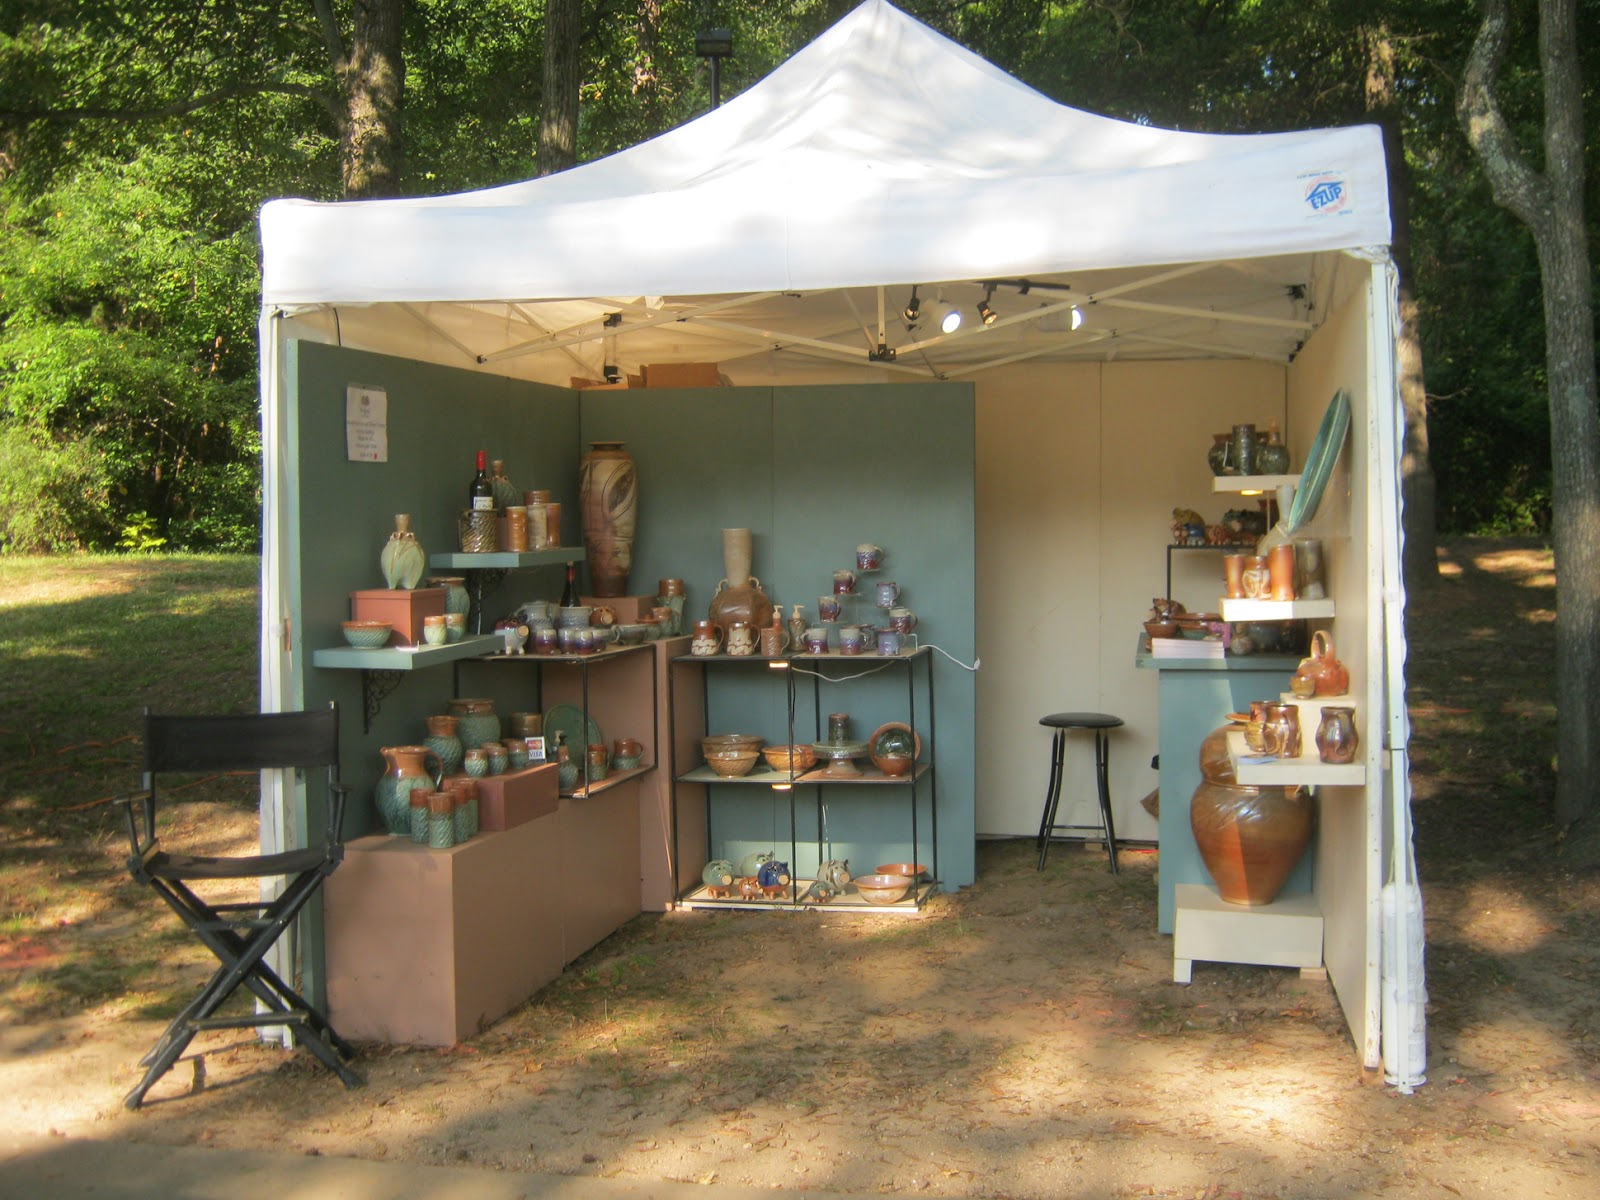 Jeff Brown Pottery The Outdoor Booth